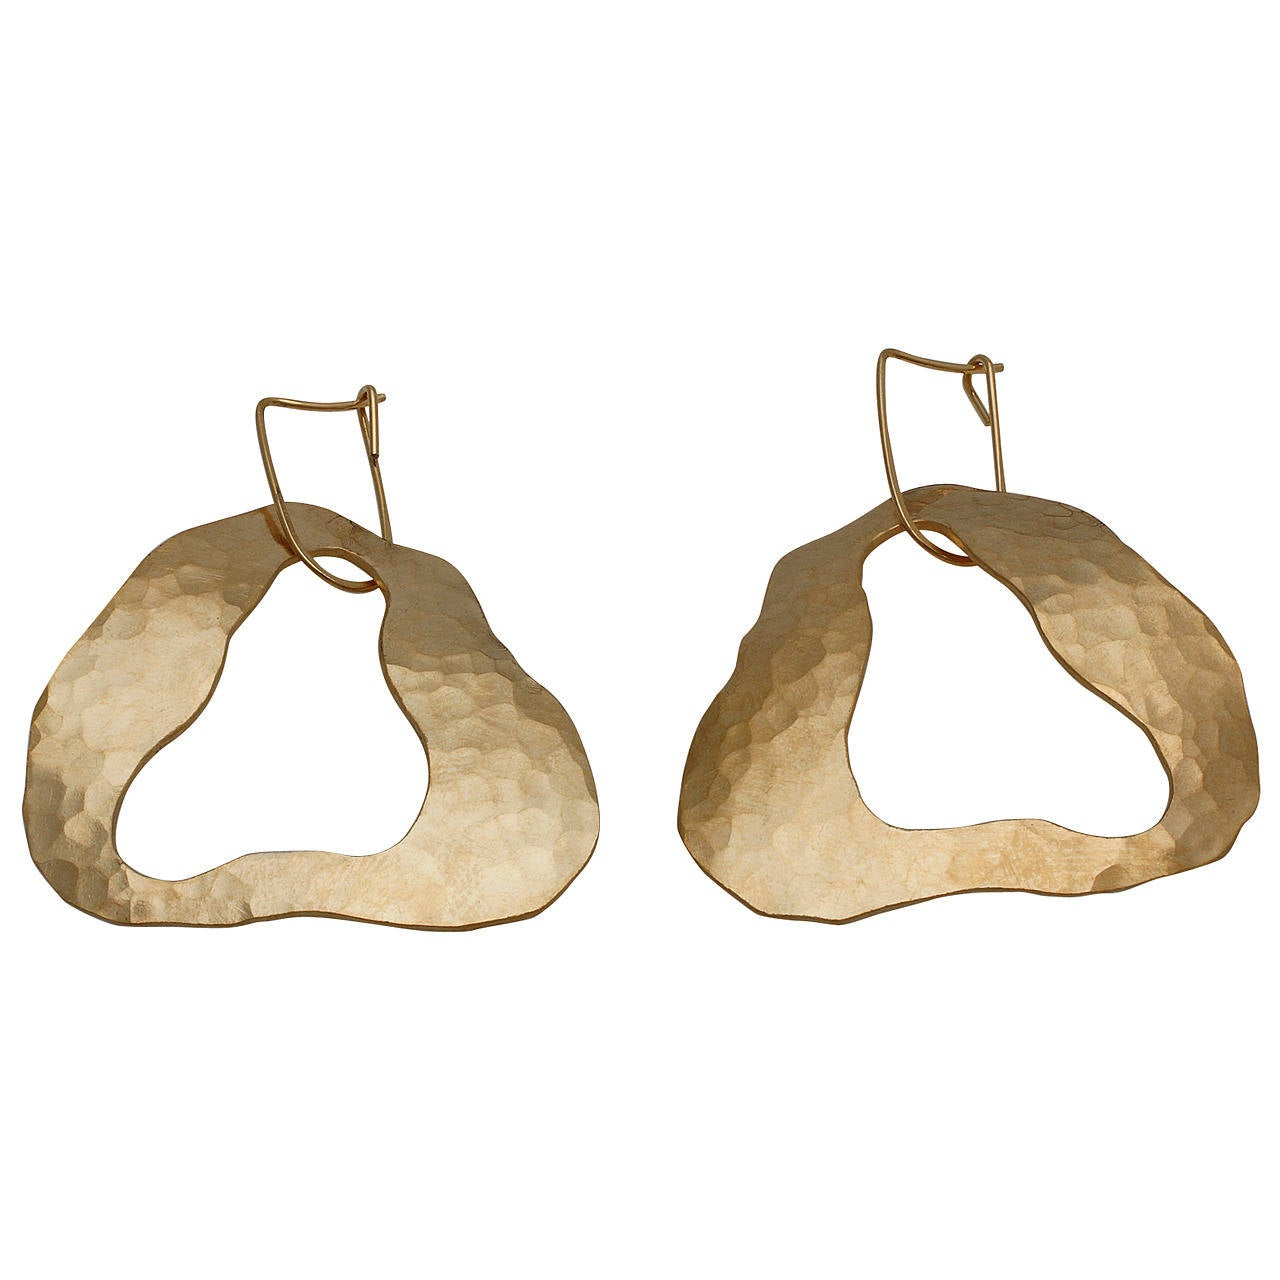 Sculpture Earrings by Jacques Jarrige, 2014 For Sale